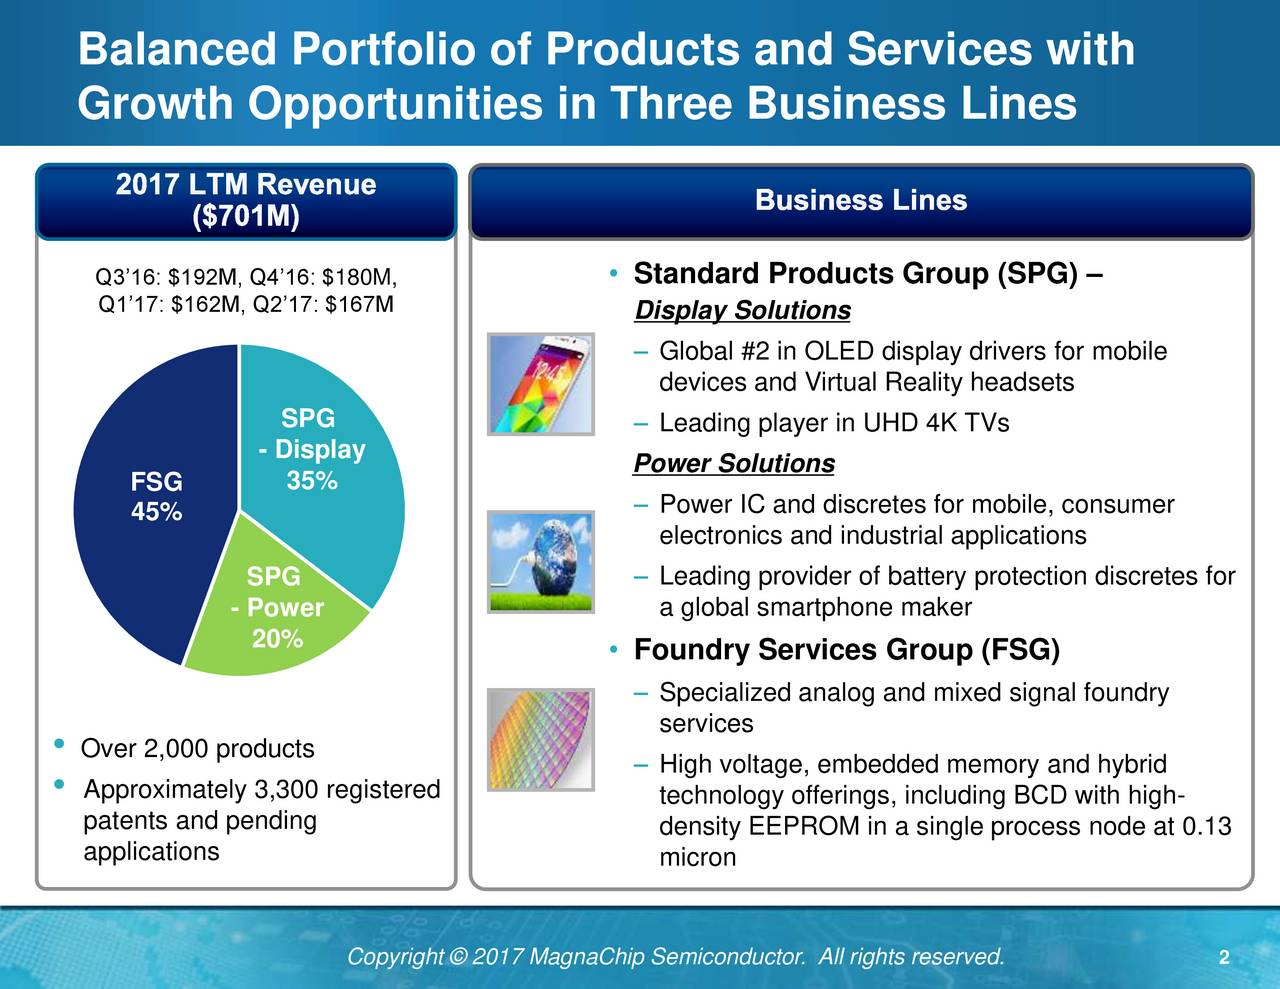 Growth Opportunities in Three Business Lines Q316: $192M, Q416: $180M,  Standard Products Group (SPG) Q117: $162M, Q217: $167M Display Solutions Global #2 in OLED display drivers for mobile devices and Virtual Reality headsets SPG  Leading player in UHD 4K TVs - Display FSG 35% Power Solutions 45%  Power IC and discretes for mobile, consumer electronics and industrial applications SPG  Leading provider of battery protection discretes for - Power a global smartphone maker 20% Foundry Services Group (FSG) Specialized analog and mixed signal foundry services Over 2,000 products High voltage, embedded memory and hybrid Approximately 3,300 registered technology offerings, including BCD with high- patents and pending density EEPROM in a single process node at 0.13 applications micron Copyright  2017 MagnaChip Semiconductor. All rights reserved. 2